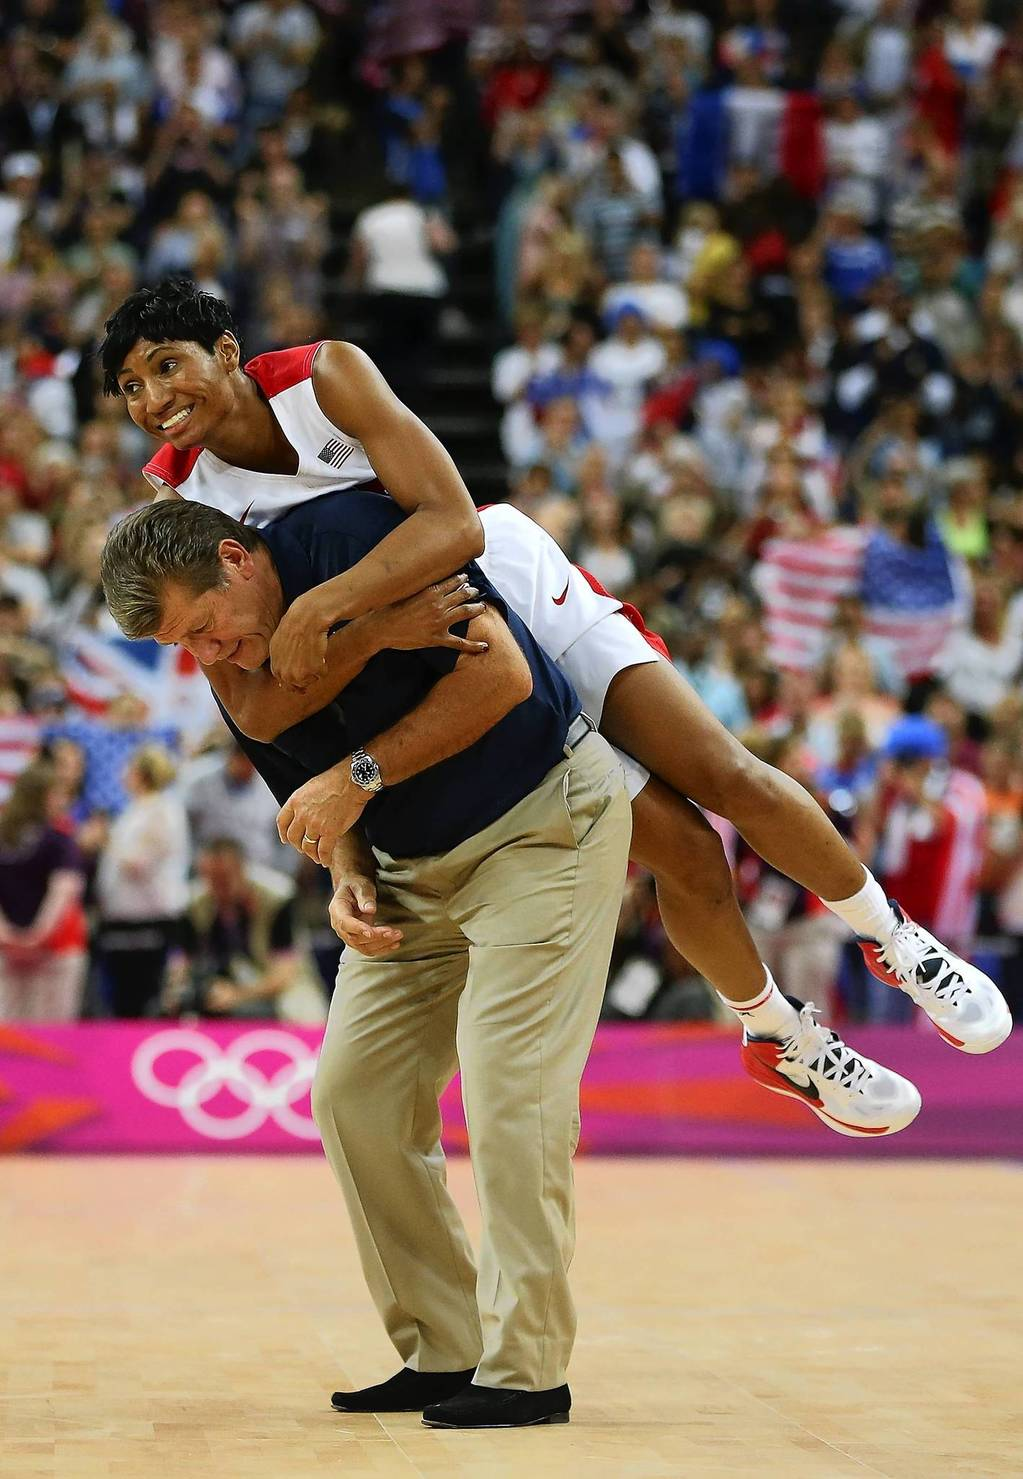 Angel McCaughtry jumps on the back of coach Geno Auriemma after the U.S. women's basketball team defeated France 86-50 to win the gold medal.